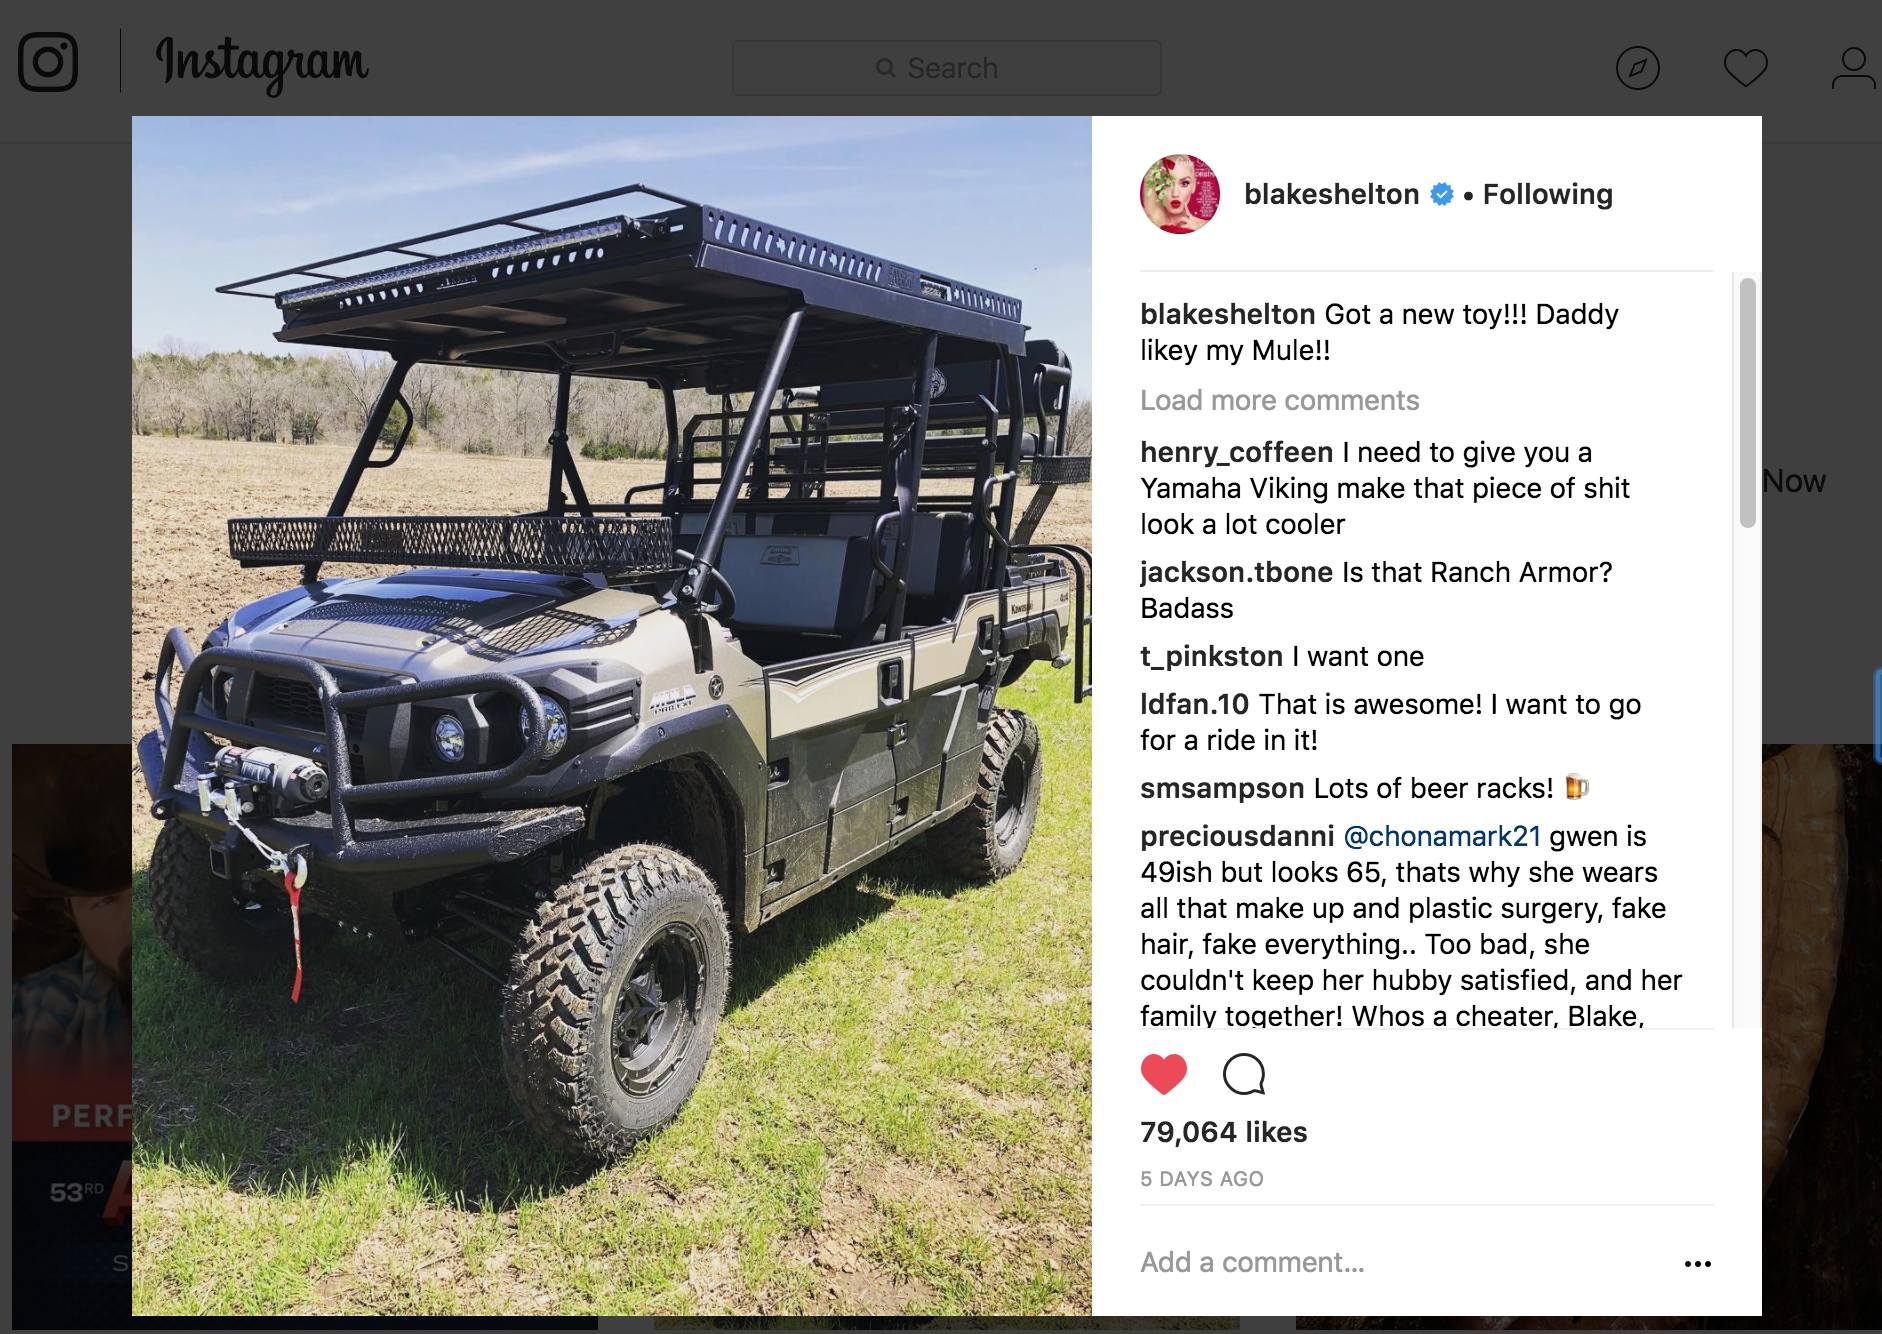 Kawasaki Mule Pro FXT Outfit and Build for Blake Shelton